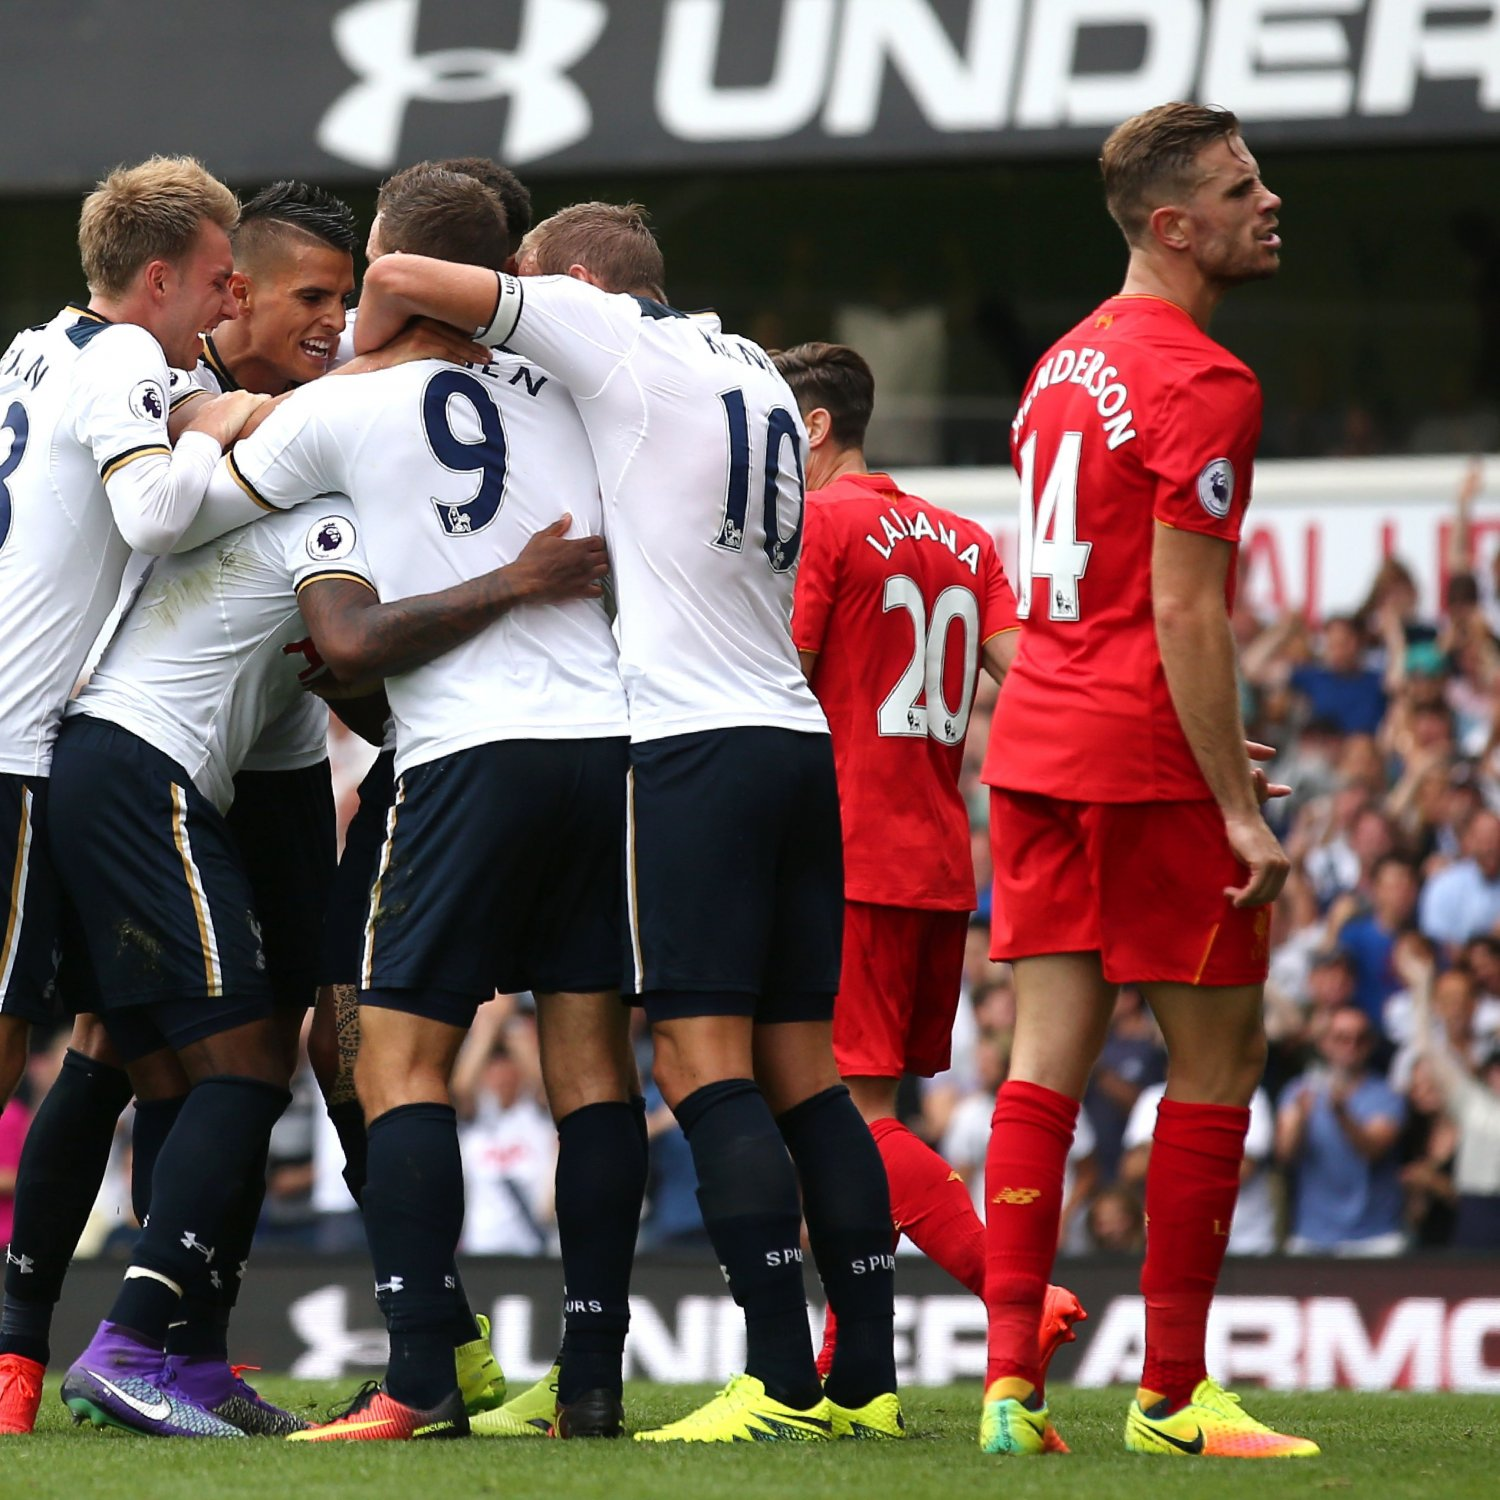 Chelsea Vs Tottenham Score Reaction From 2016 Premier: Tottenham Vs. Liverpool: Score And Reaction From 2016